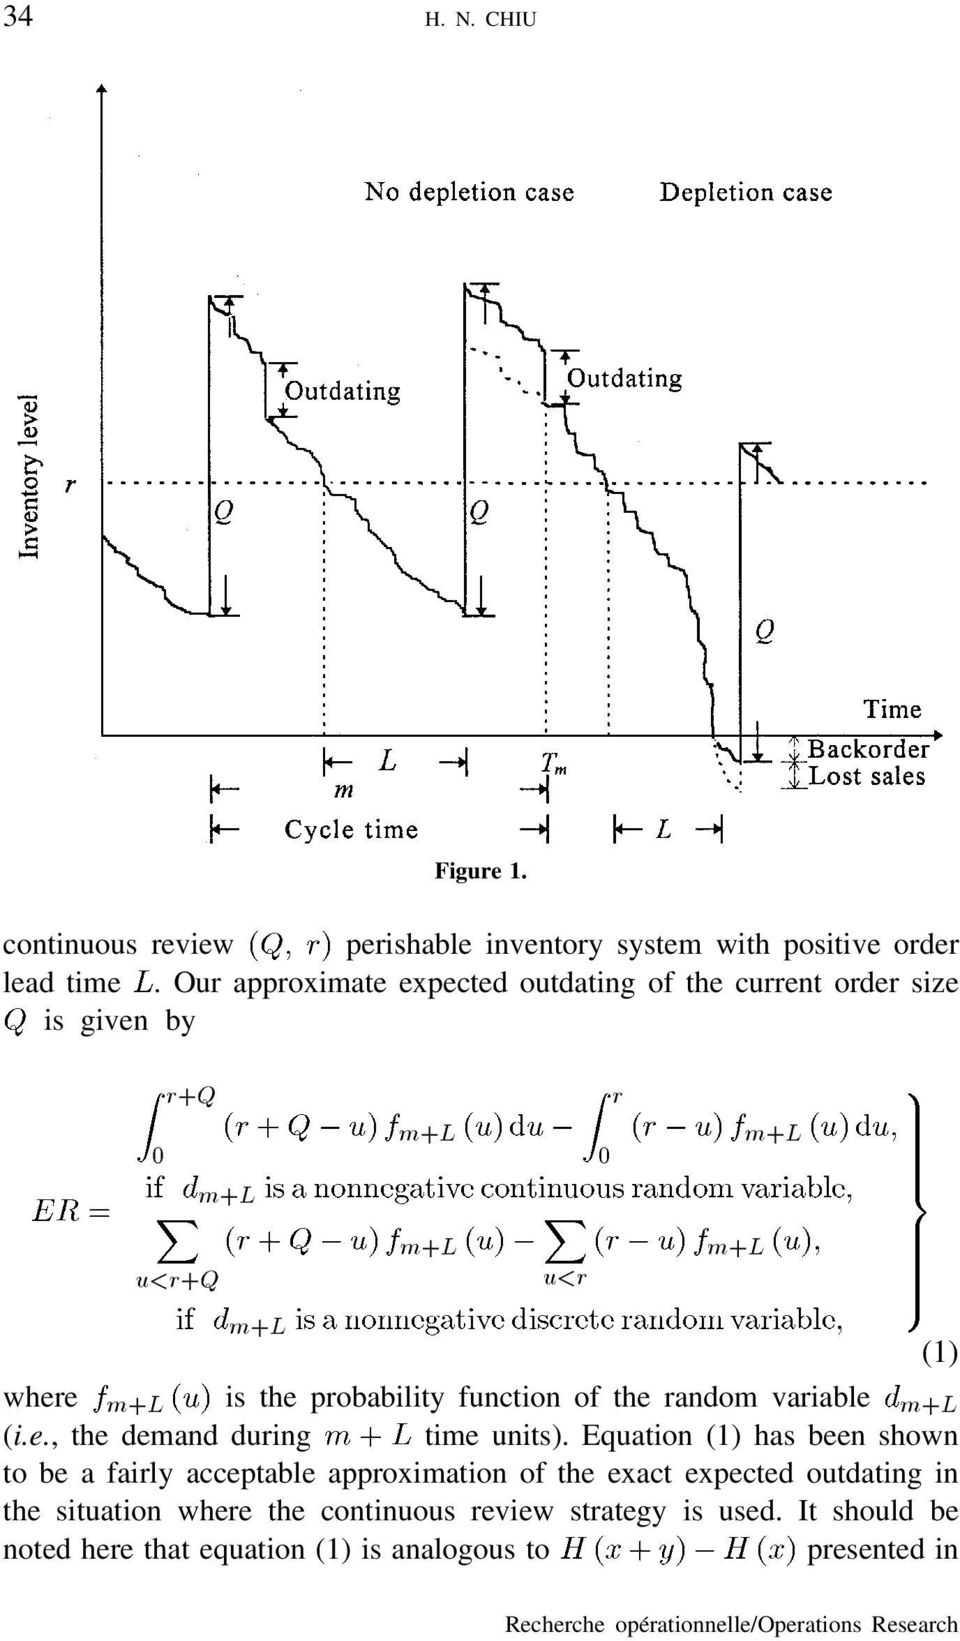 function of the andom vaiable m+l (i.e., the demand duing time units).